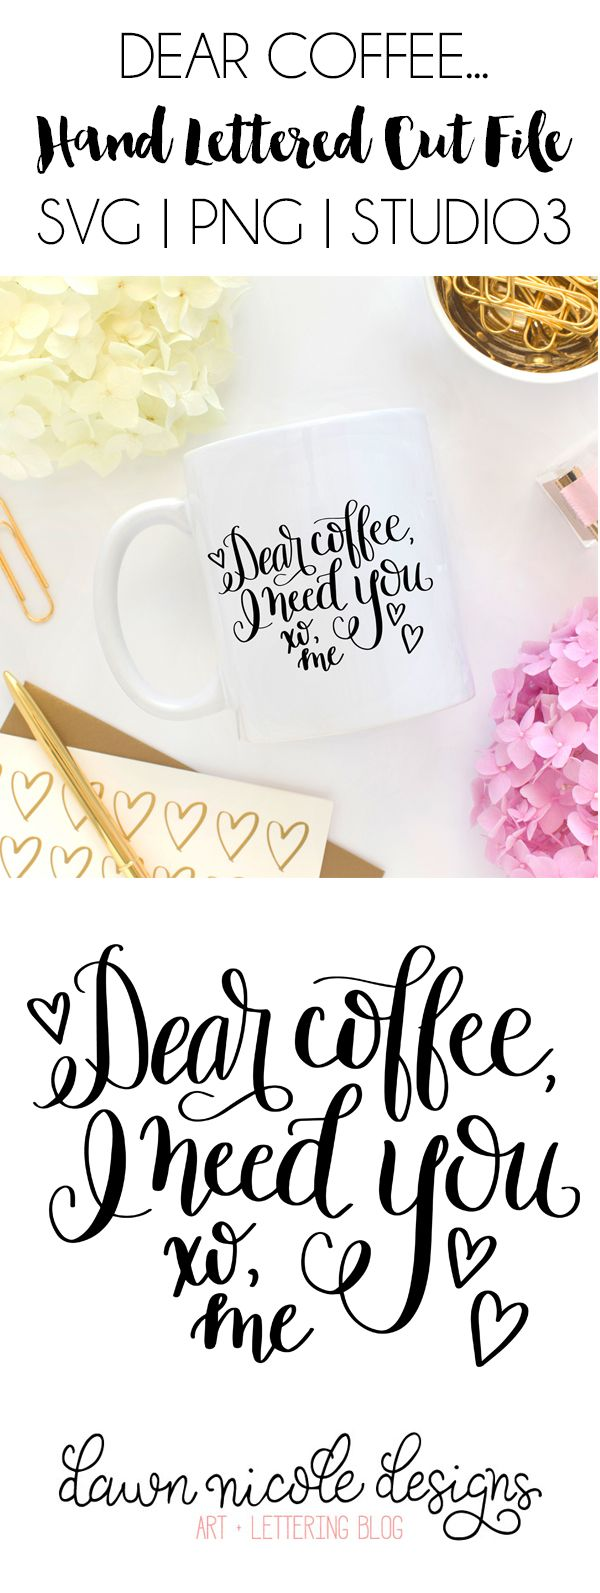 Dear Coffee Hand Lettered FREE SVG Cut File (also available in PNG and .Studio3 formats)   DawnNicoleDesigns.com